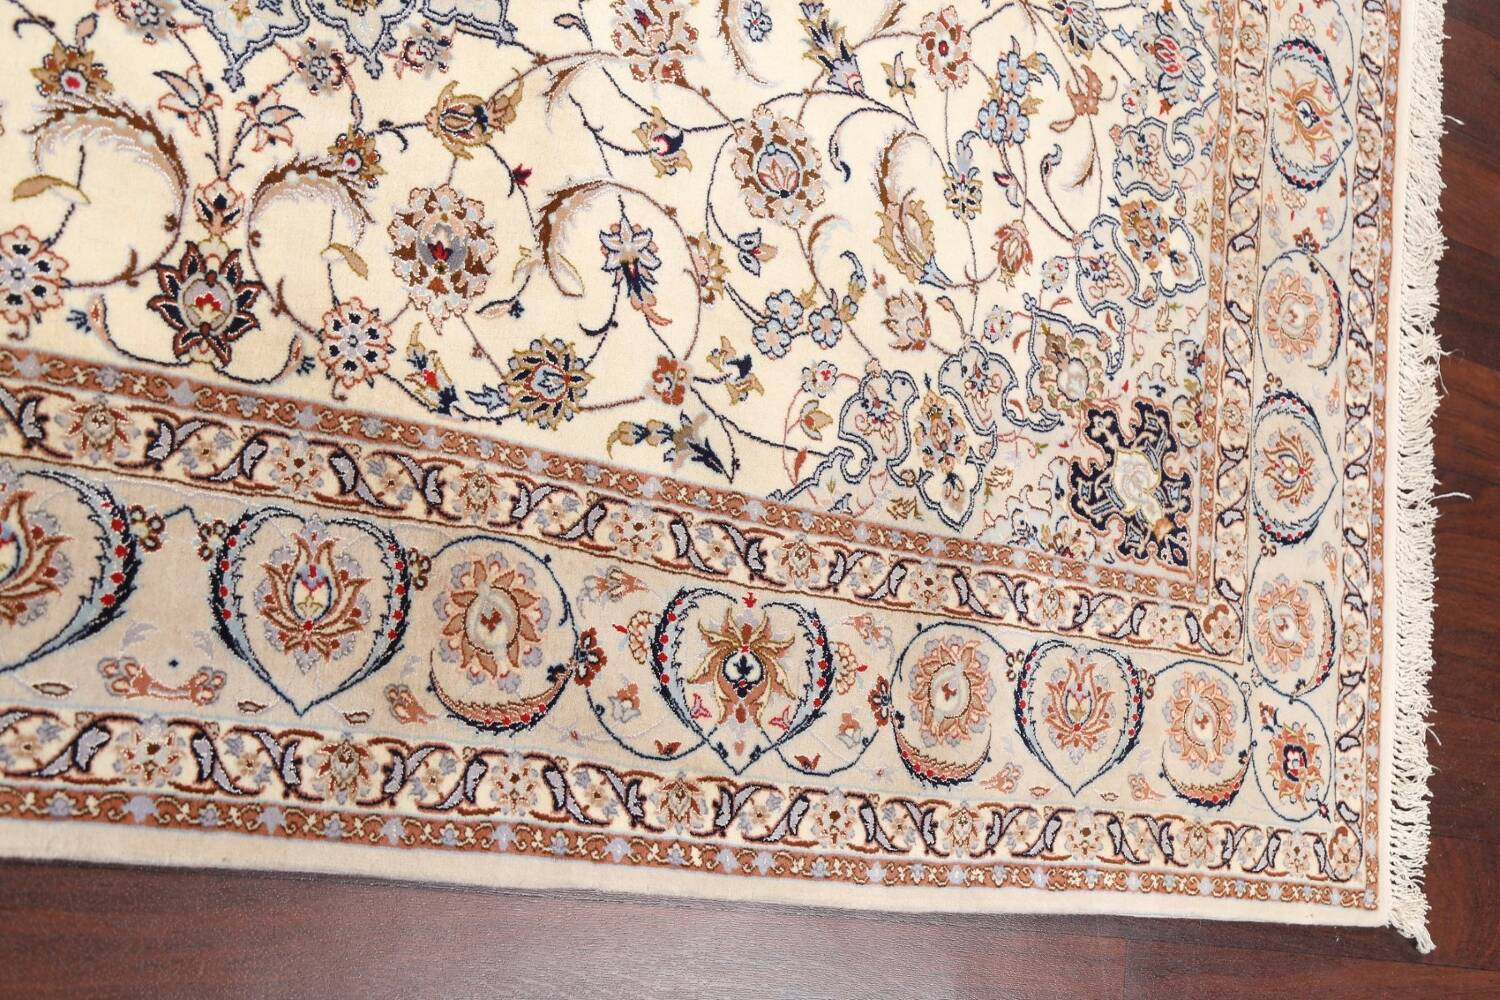 100% Vegetable Dye Floral Isfahan Persian Area Rug 5x8 image 12